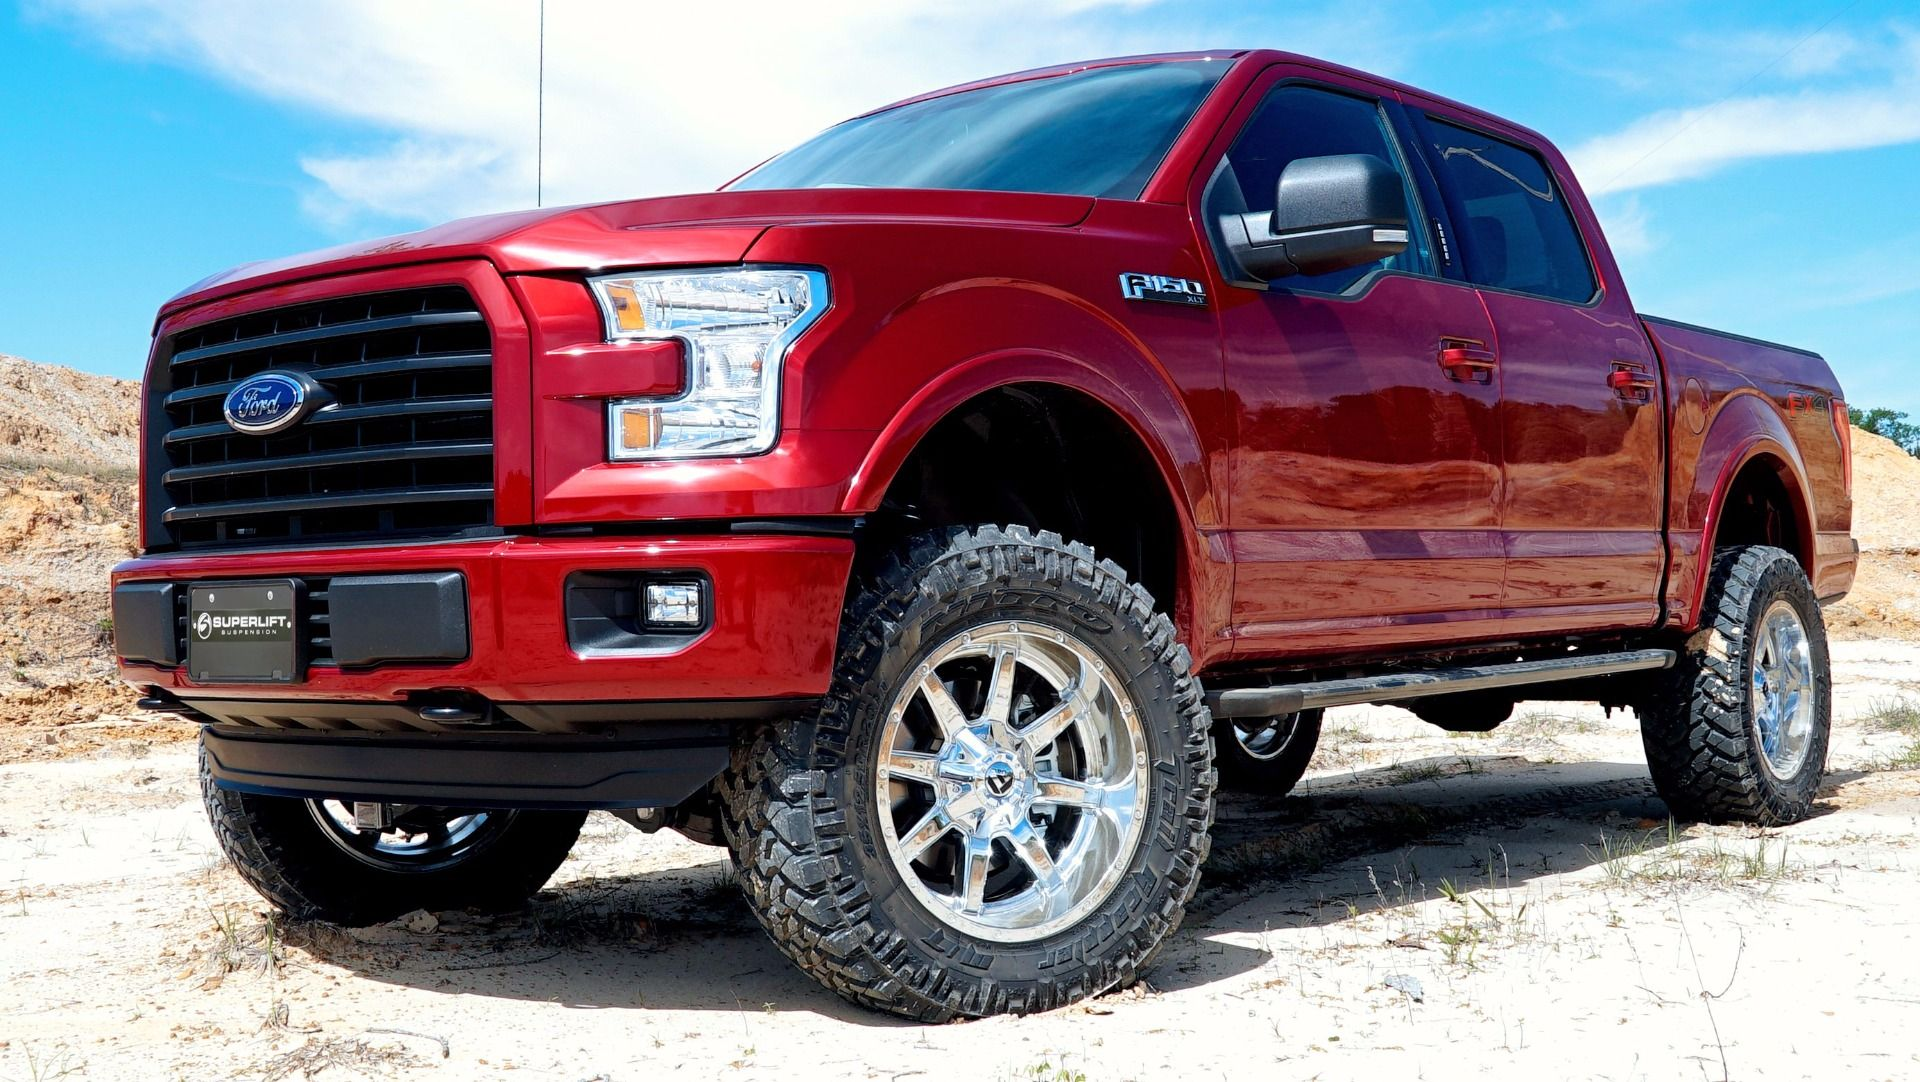 6 Inch Lift Kit For Ford F150 4X4 >> 4 5 Inch Lift Kit 2015 2018 Ford F 150 4wd With Superide Or Bilstein Rear Shocks